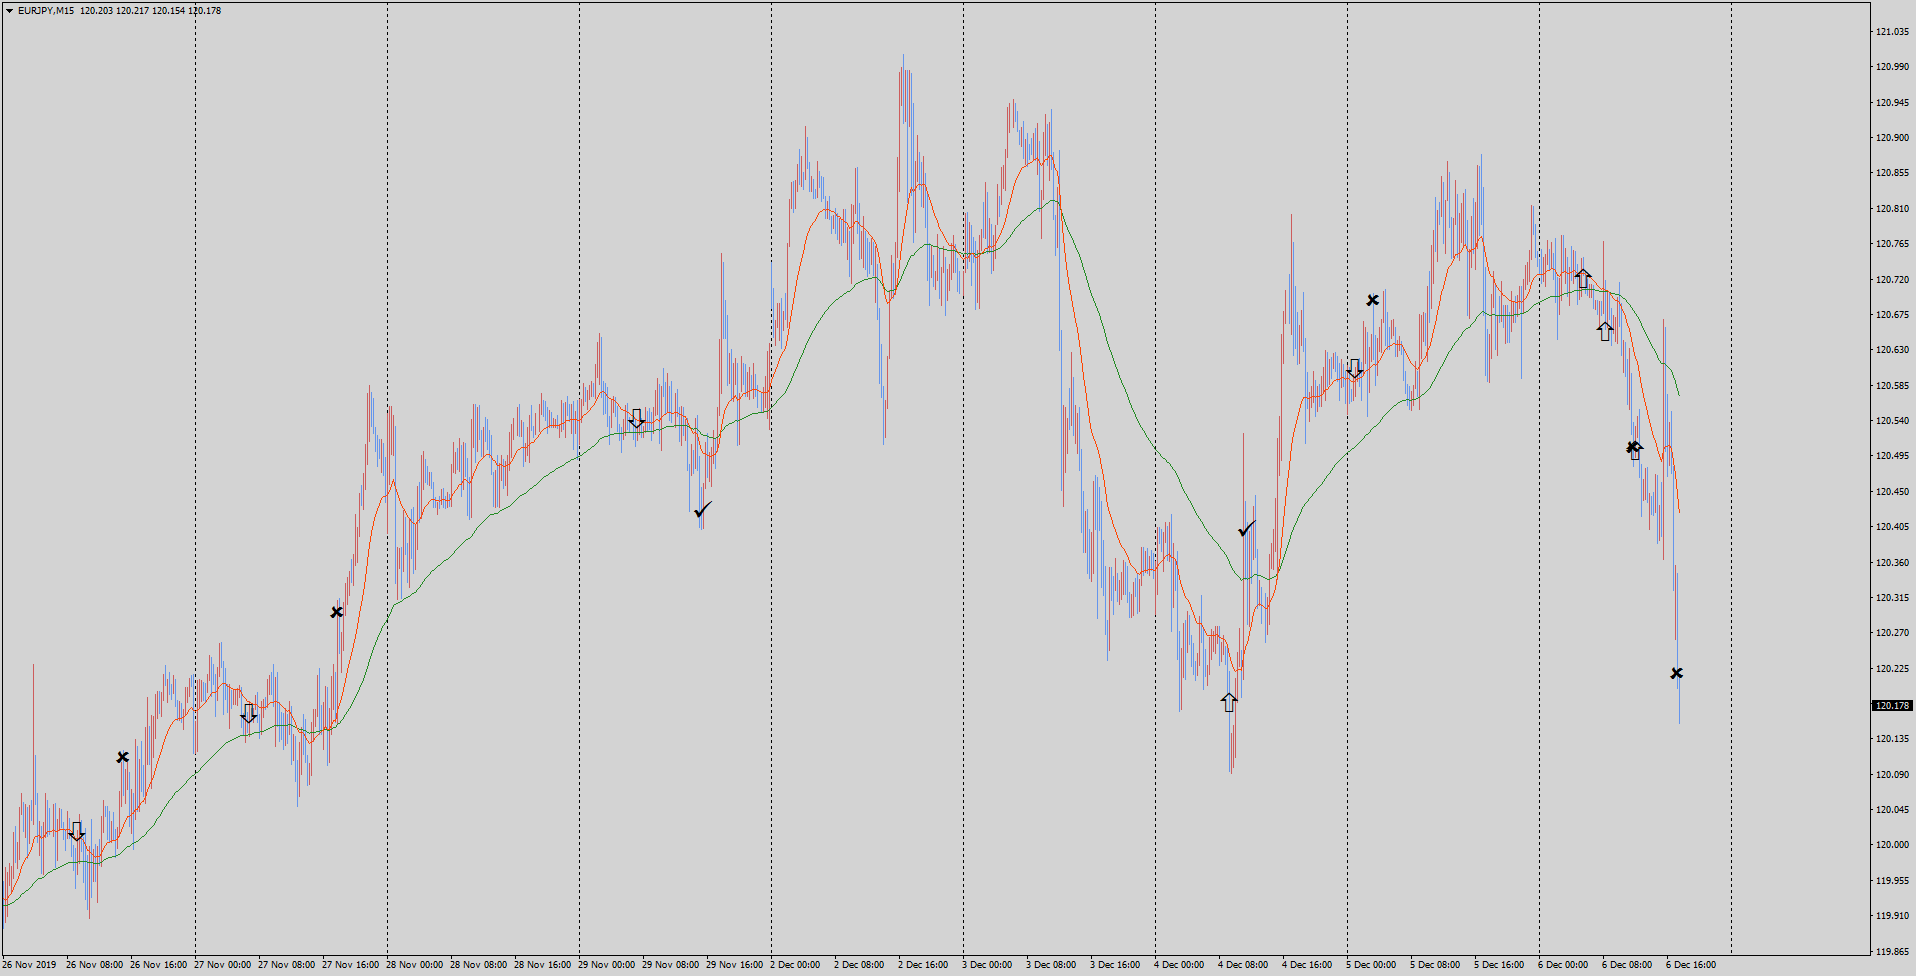 19-12-06-eurjpy-m15-tradexfin-limited.png